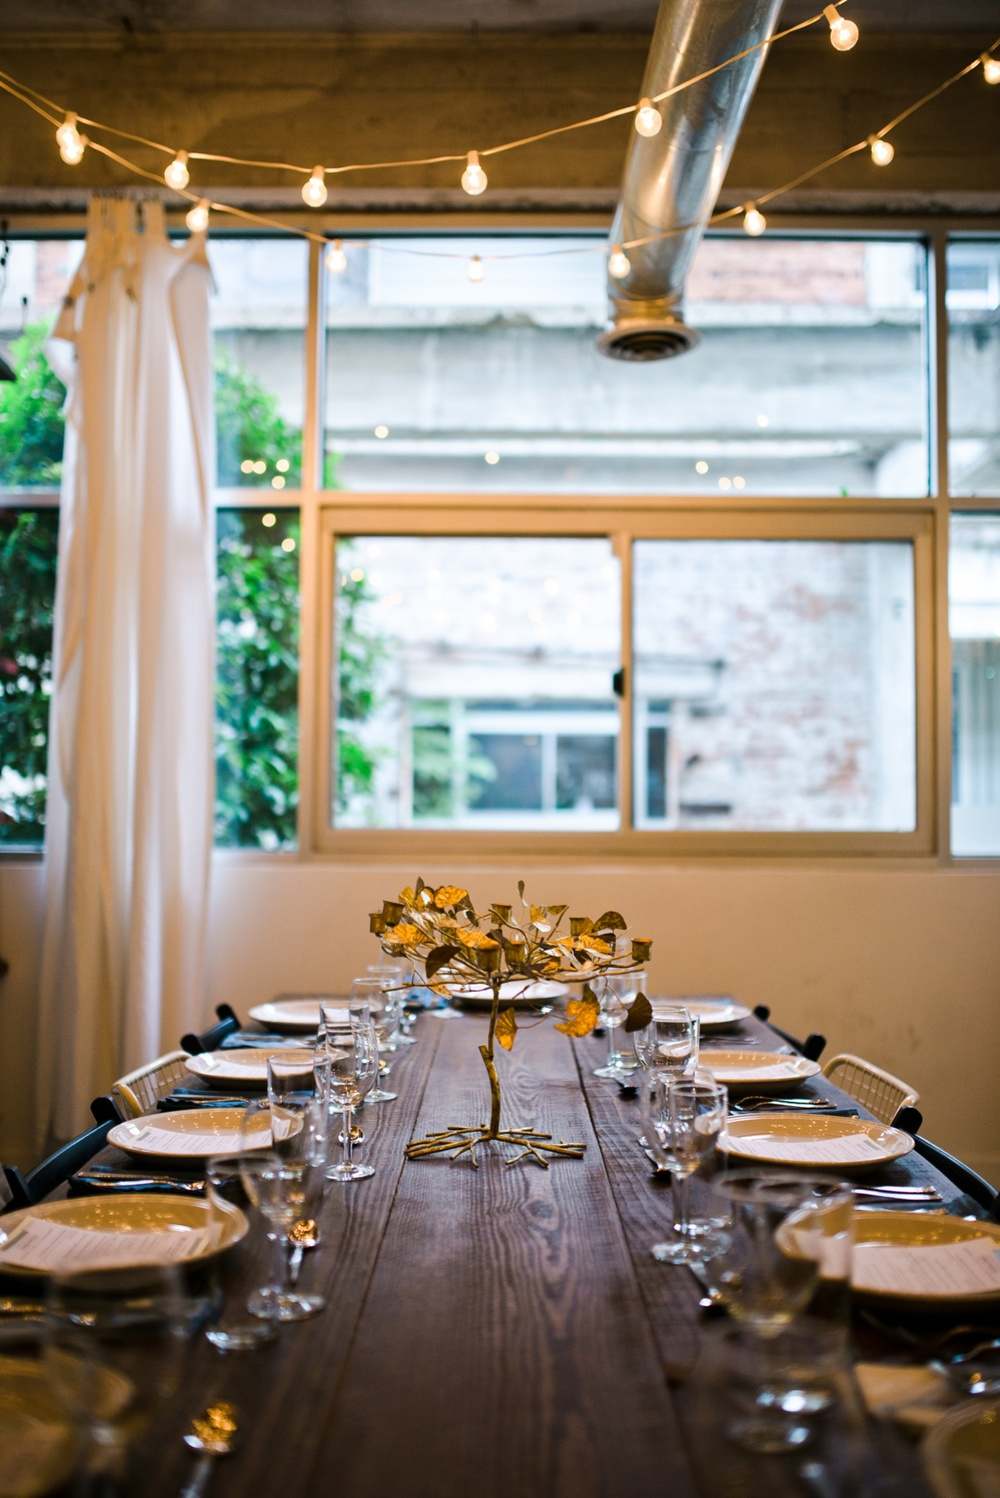 Homespun ATL September 2014 Gathering | Photos by Blake Burton_0017.jpg